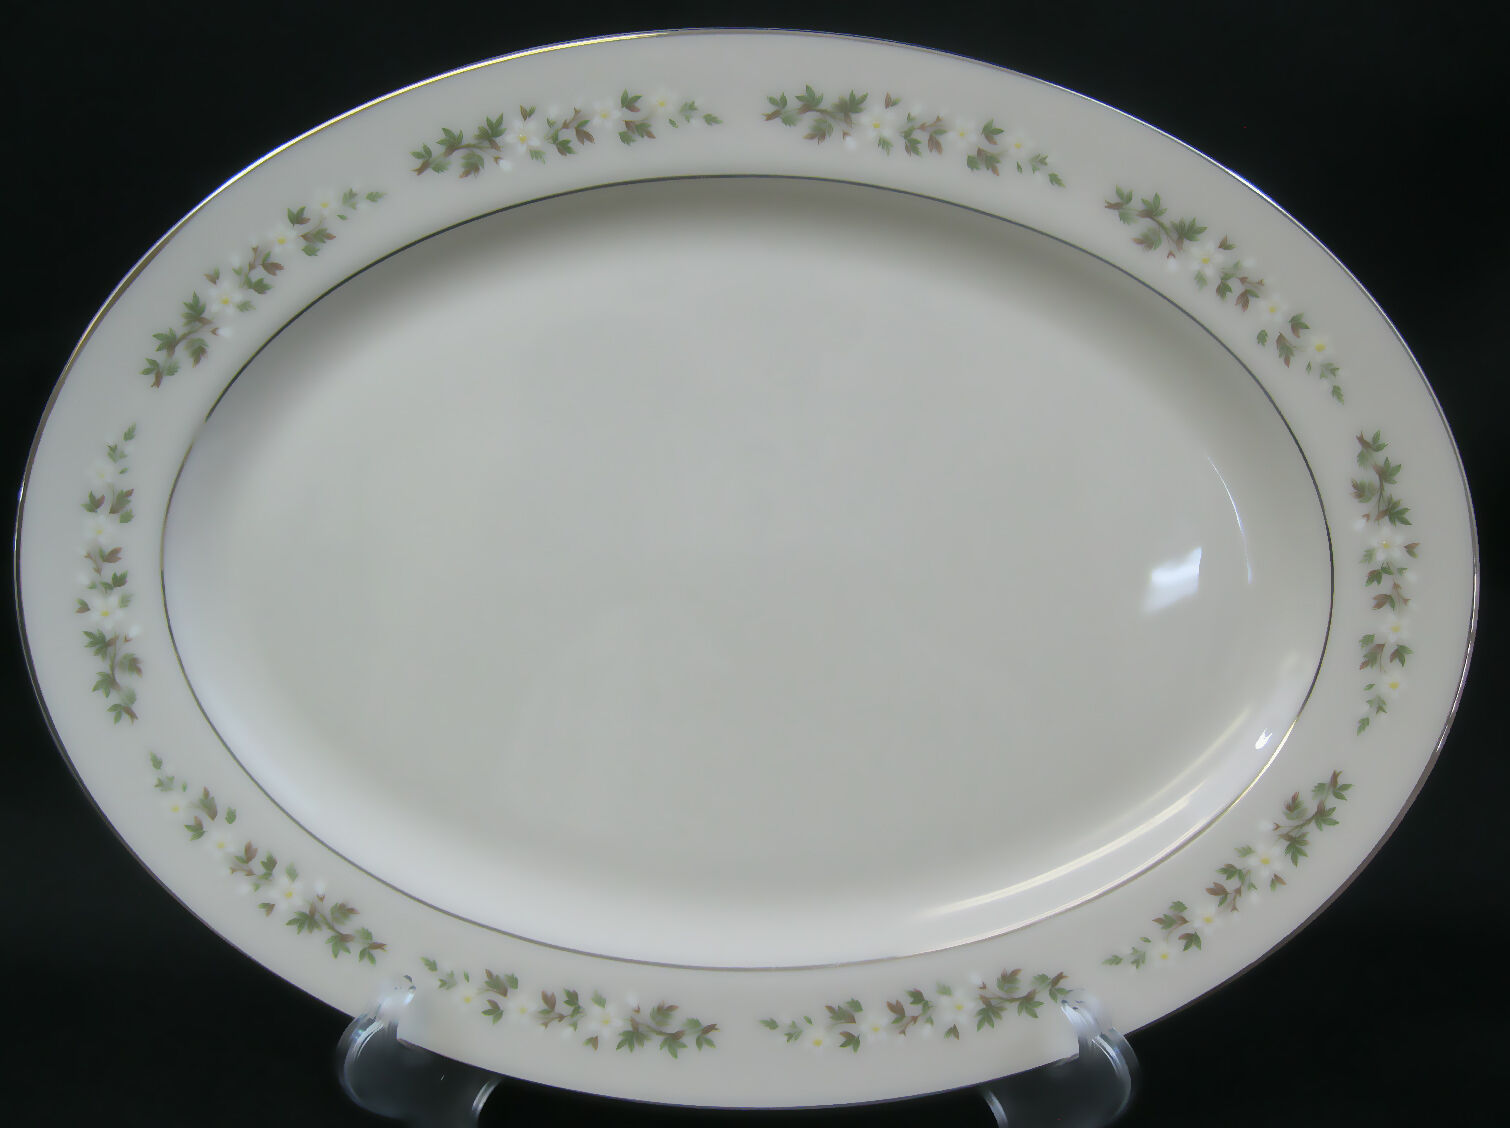 top 10 best-selling china patterns | ebay